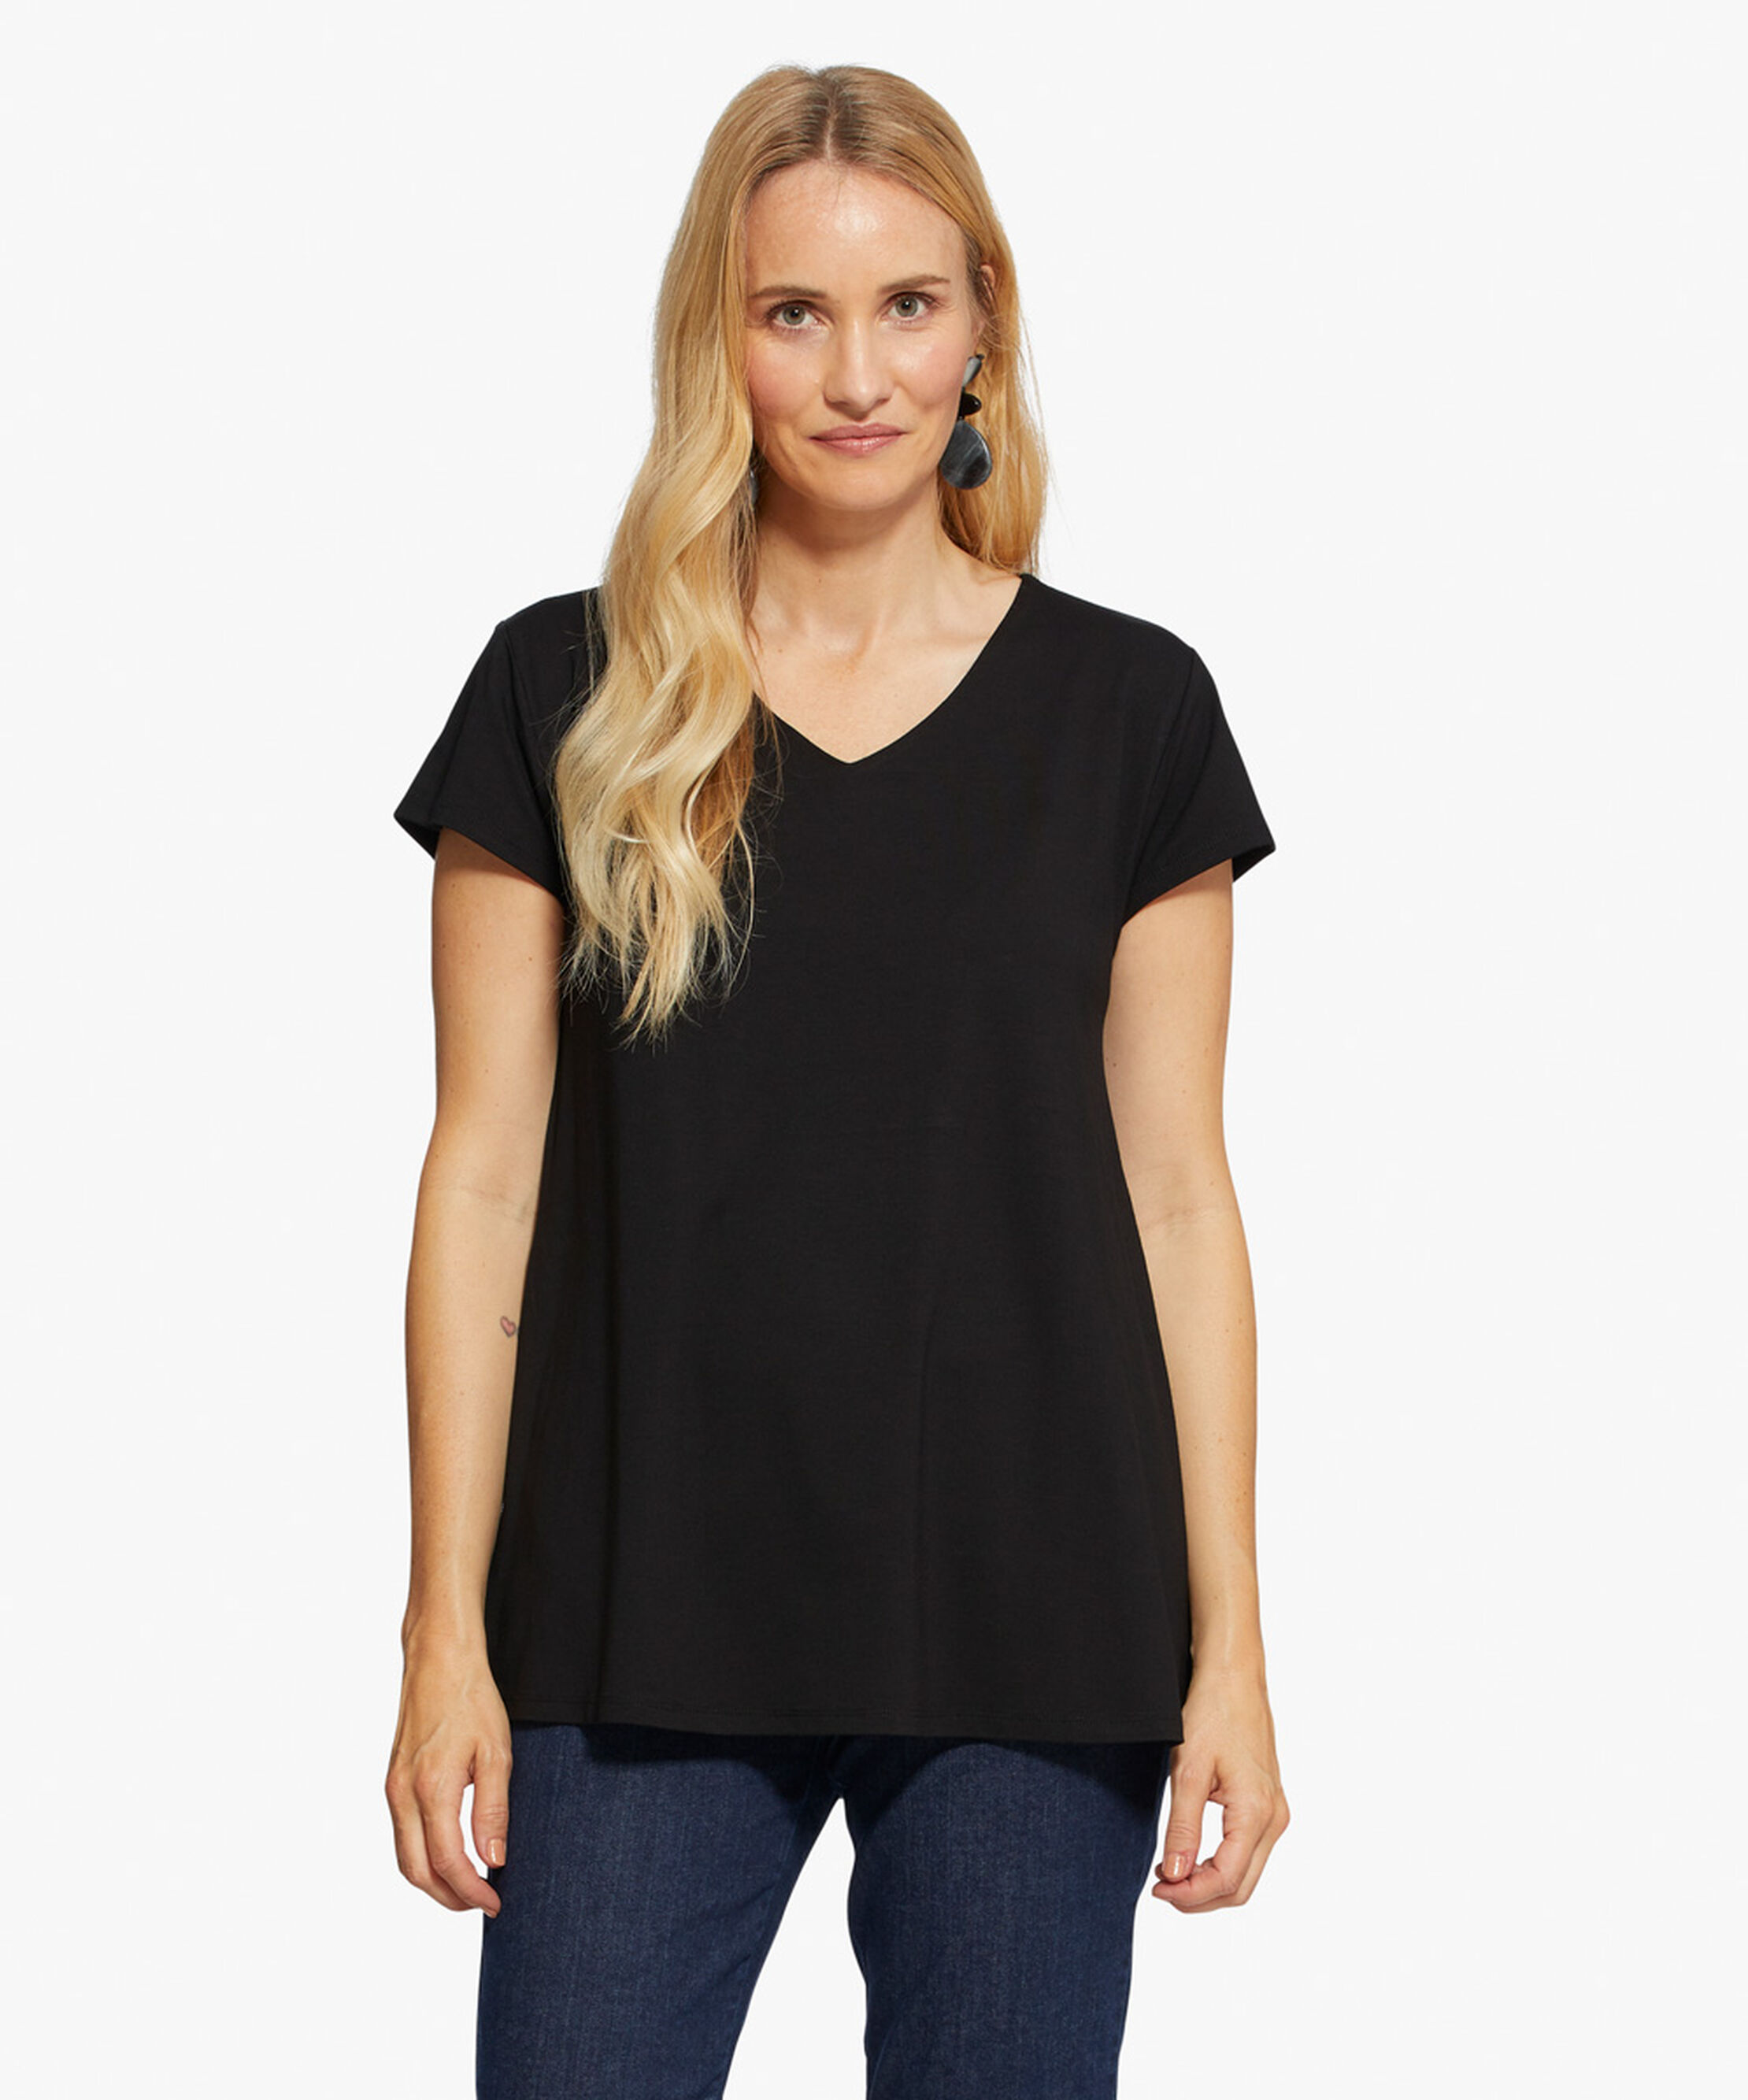 DIGNA TOP, Black, hi-res